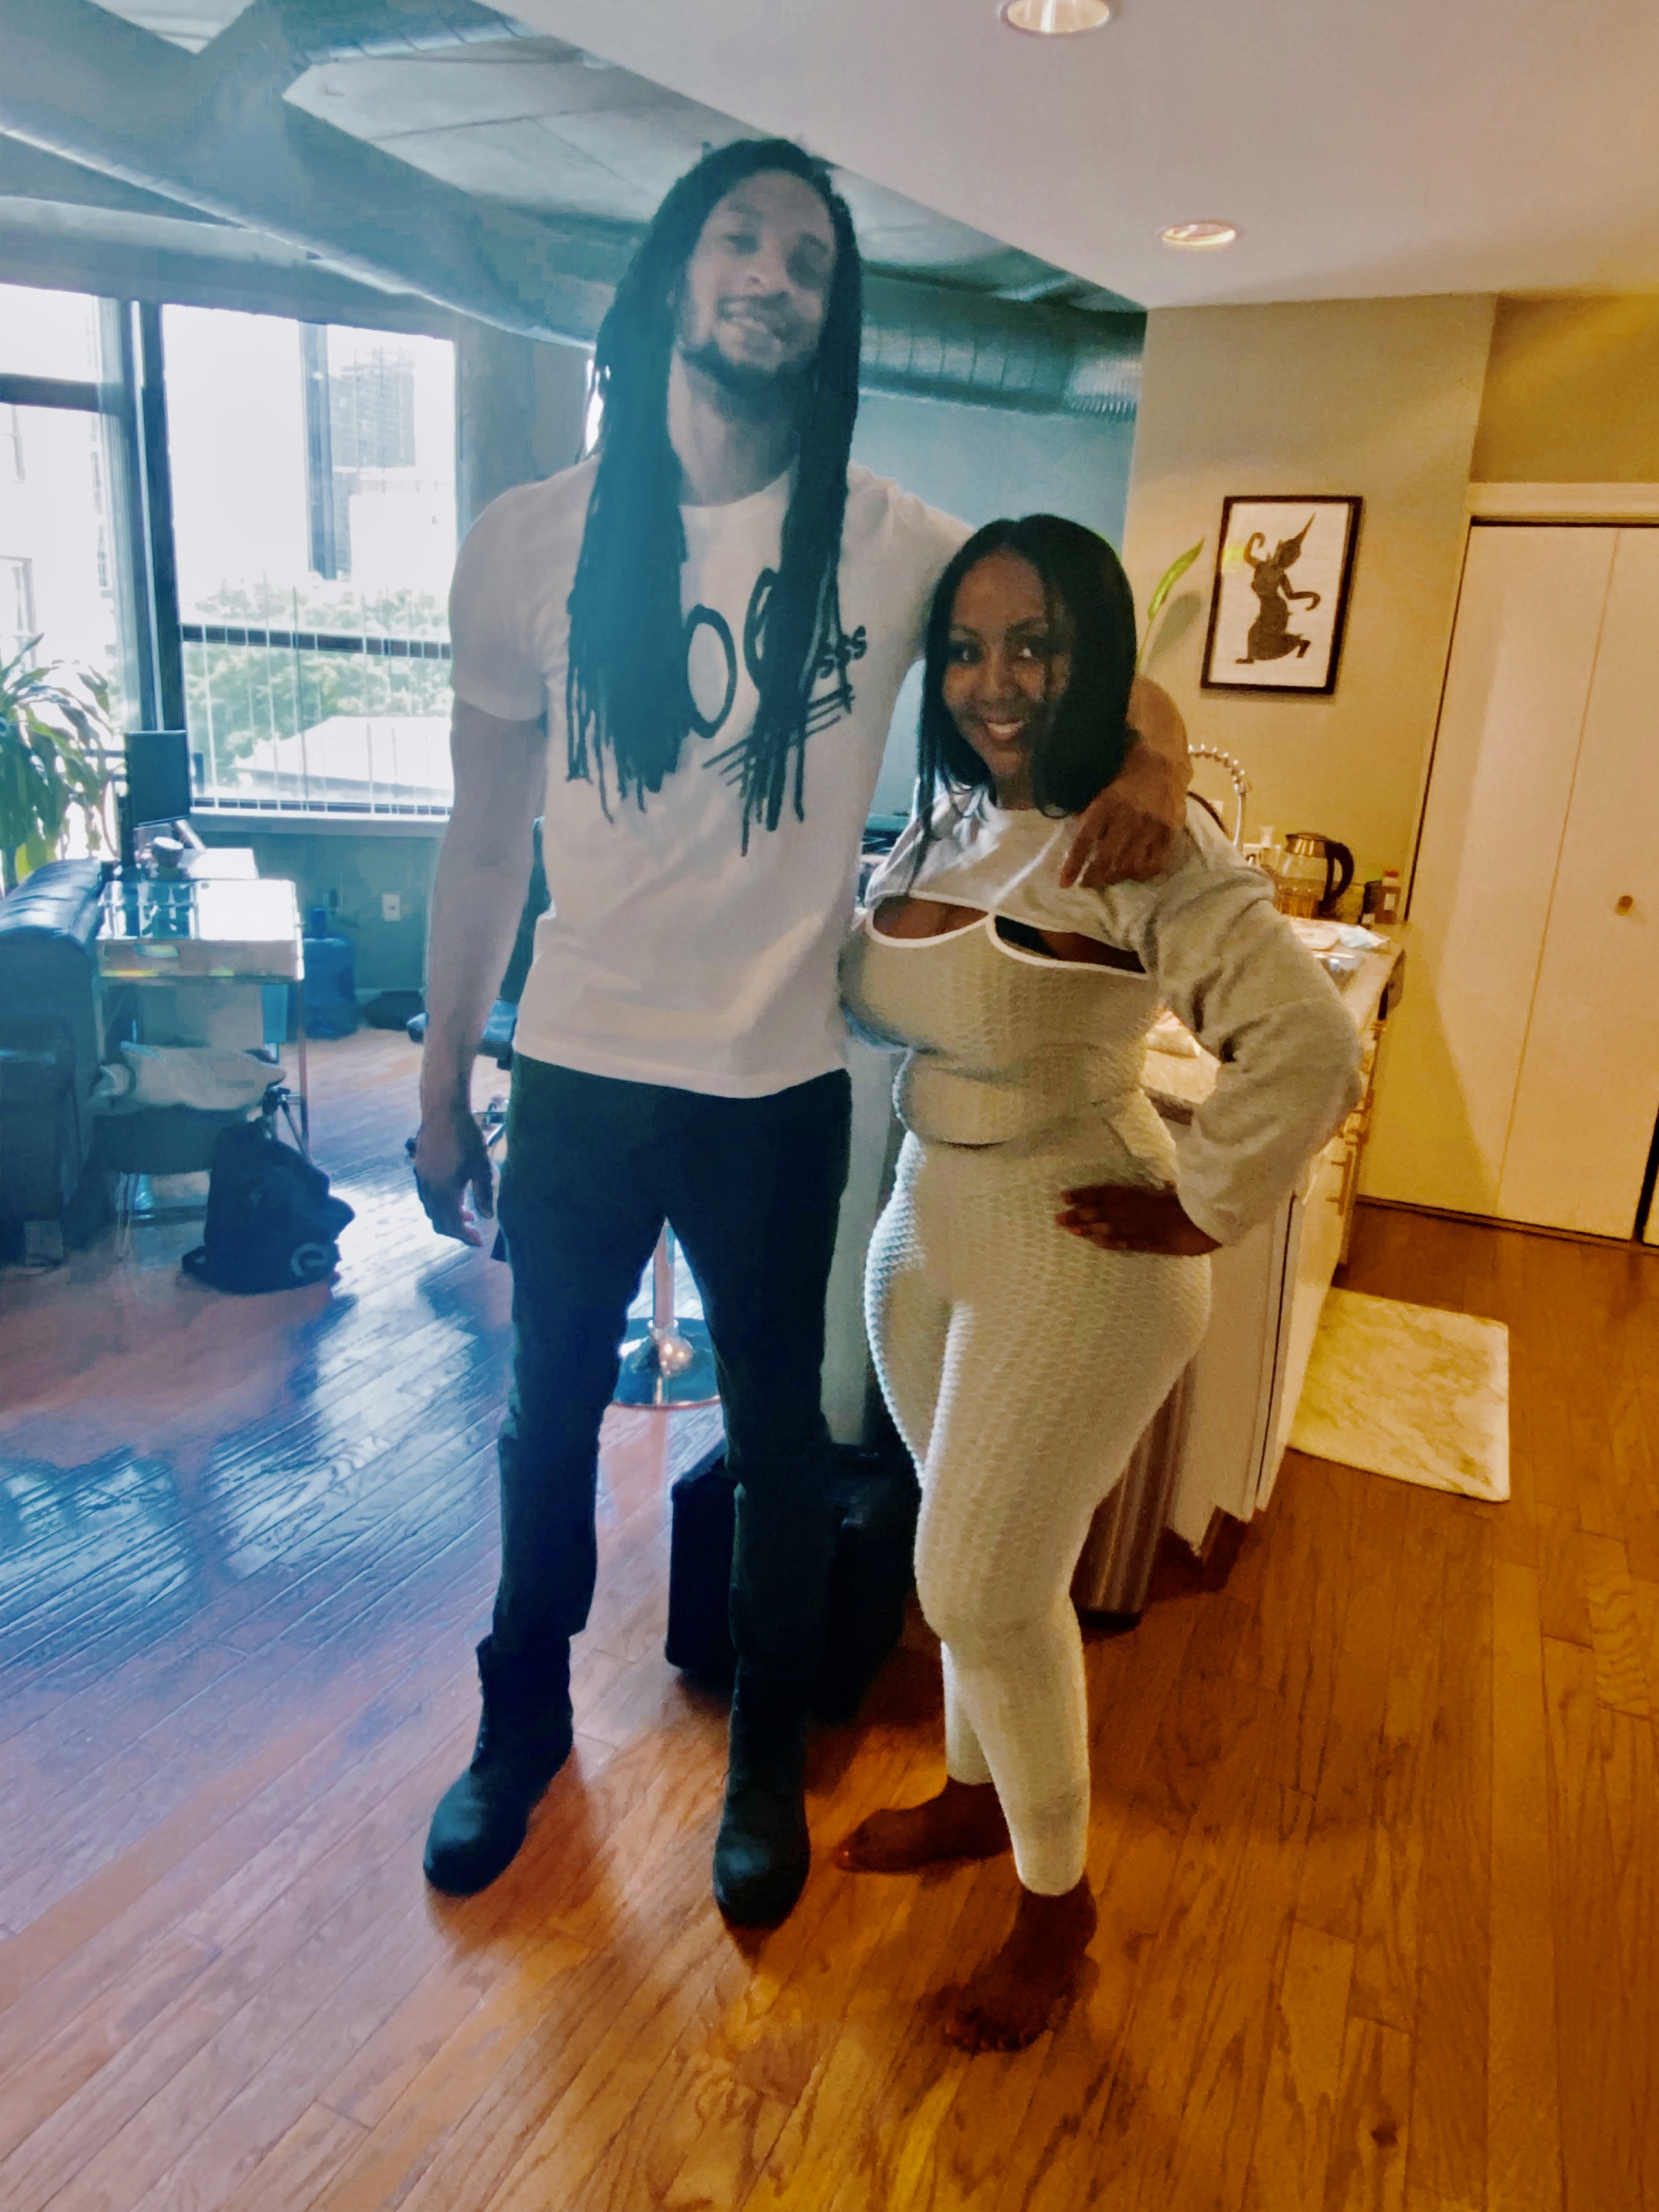 """Reality TV Star Kimberly D. Worthy and Model Darryl """"DC"""" Chambers Bring the #FreakoutChallenge to Social Media"""